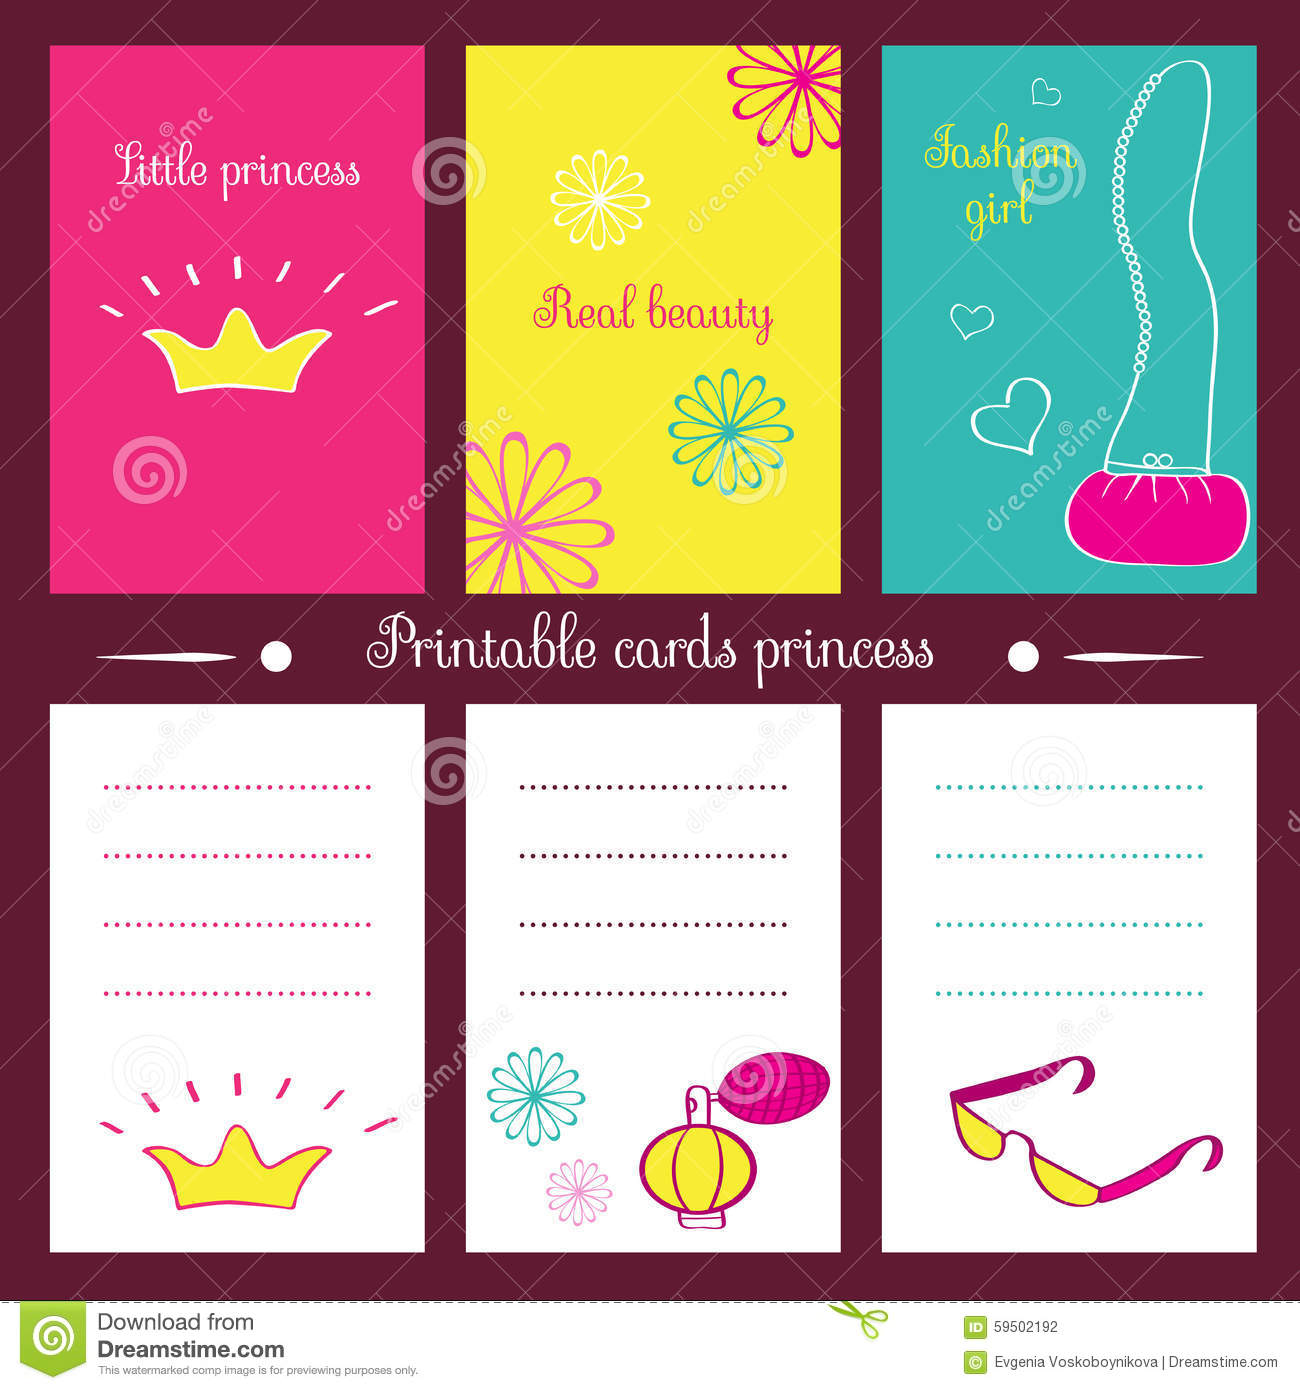 picture about Printable Notepads titled Printable playing cards princess. inventory vector. Instance of